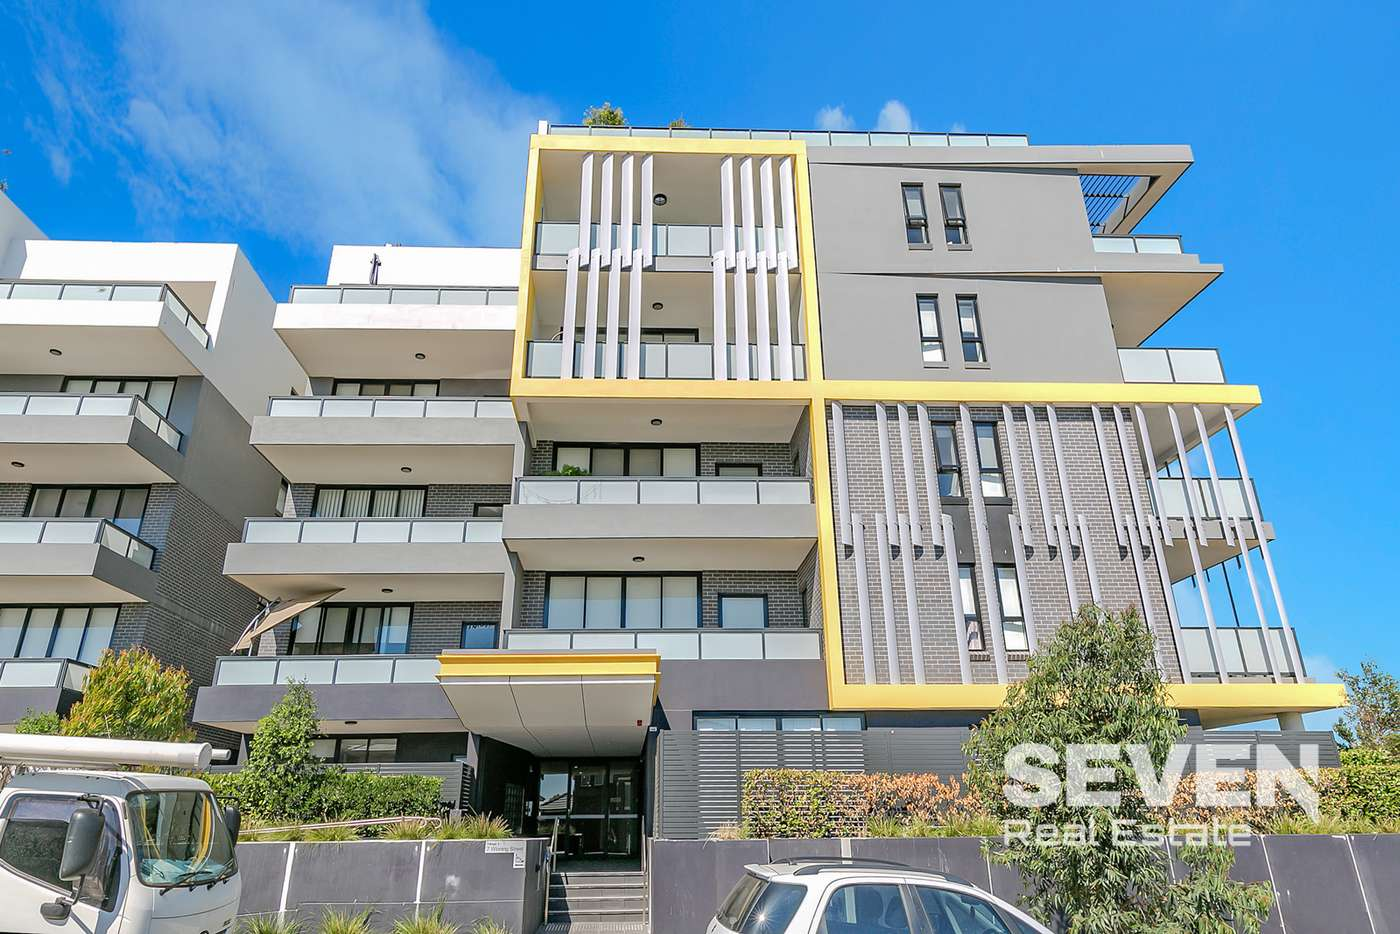 Main view of Homely apartment listing, 251/7 Winning Street, Kellyville NSW 2155